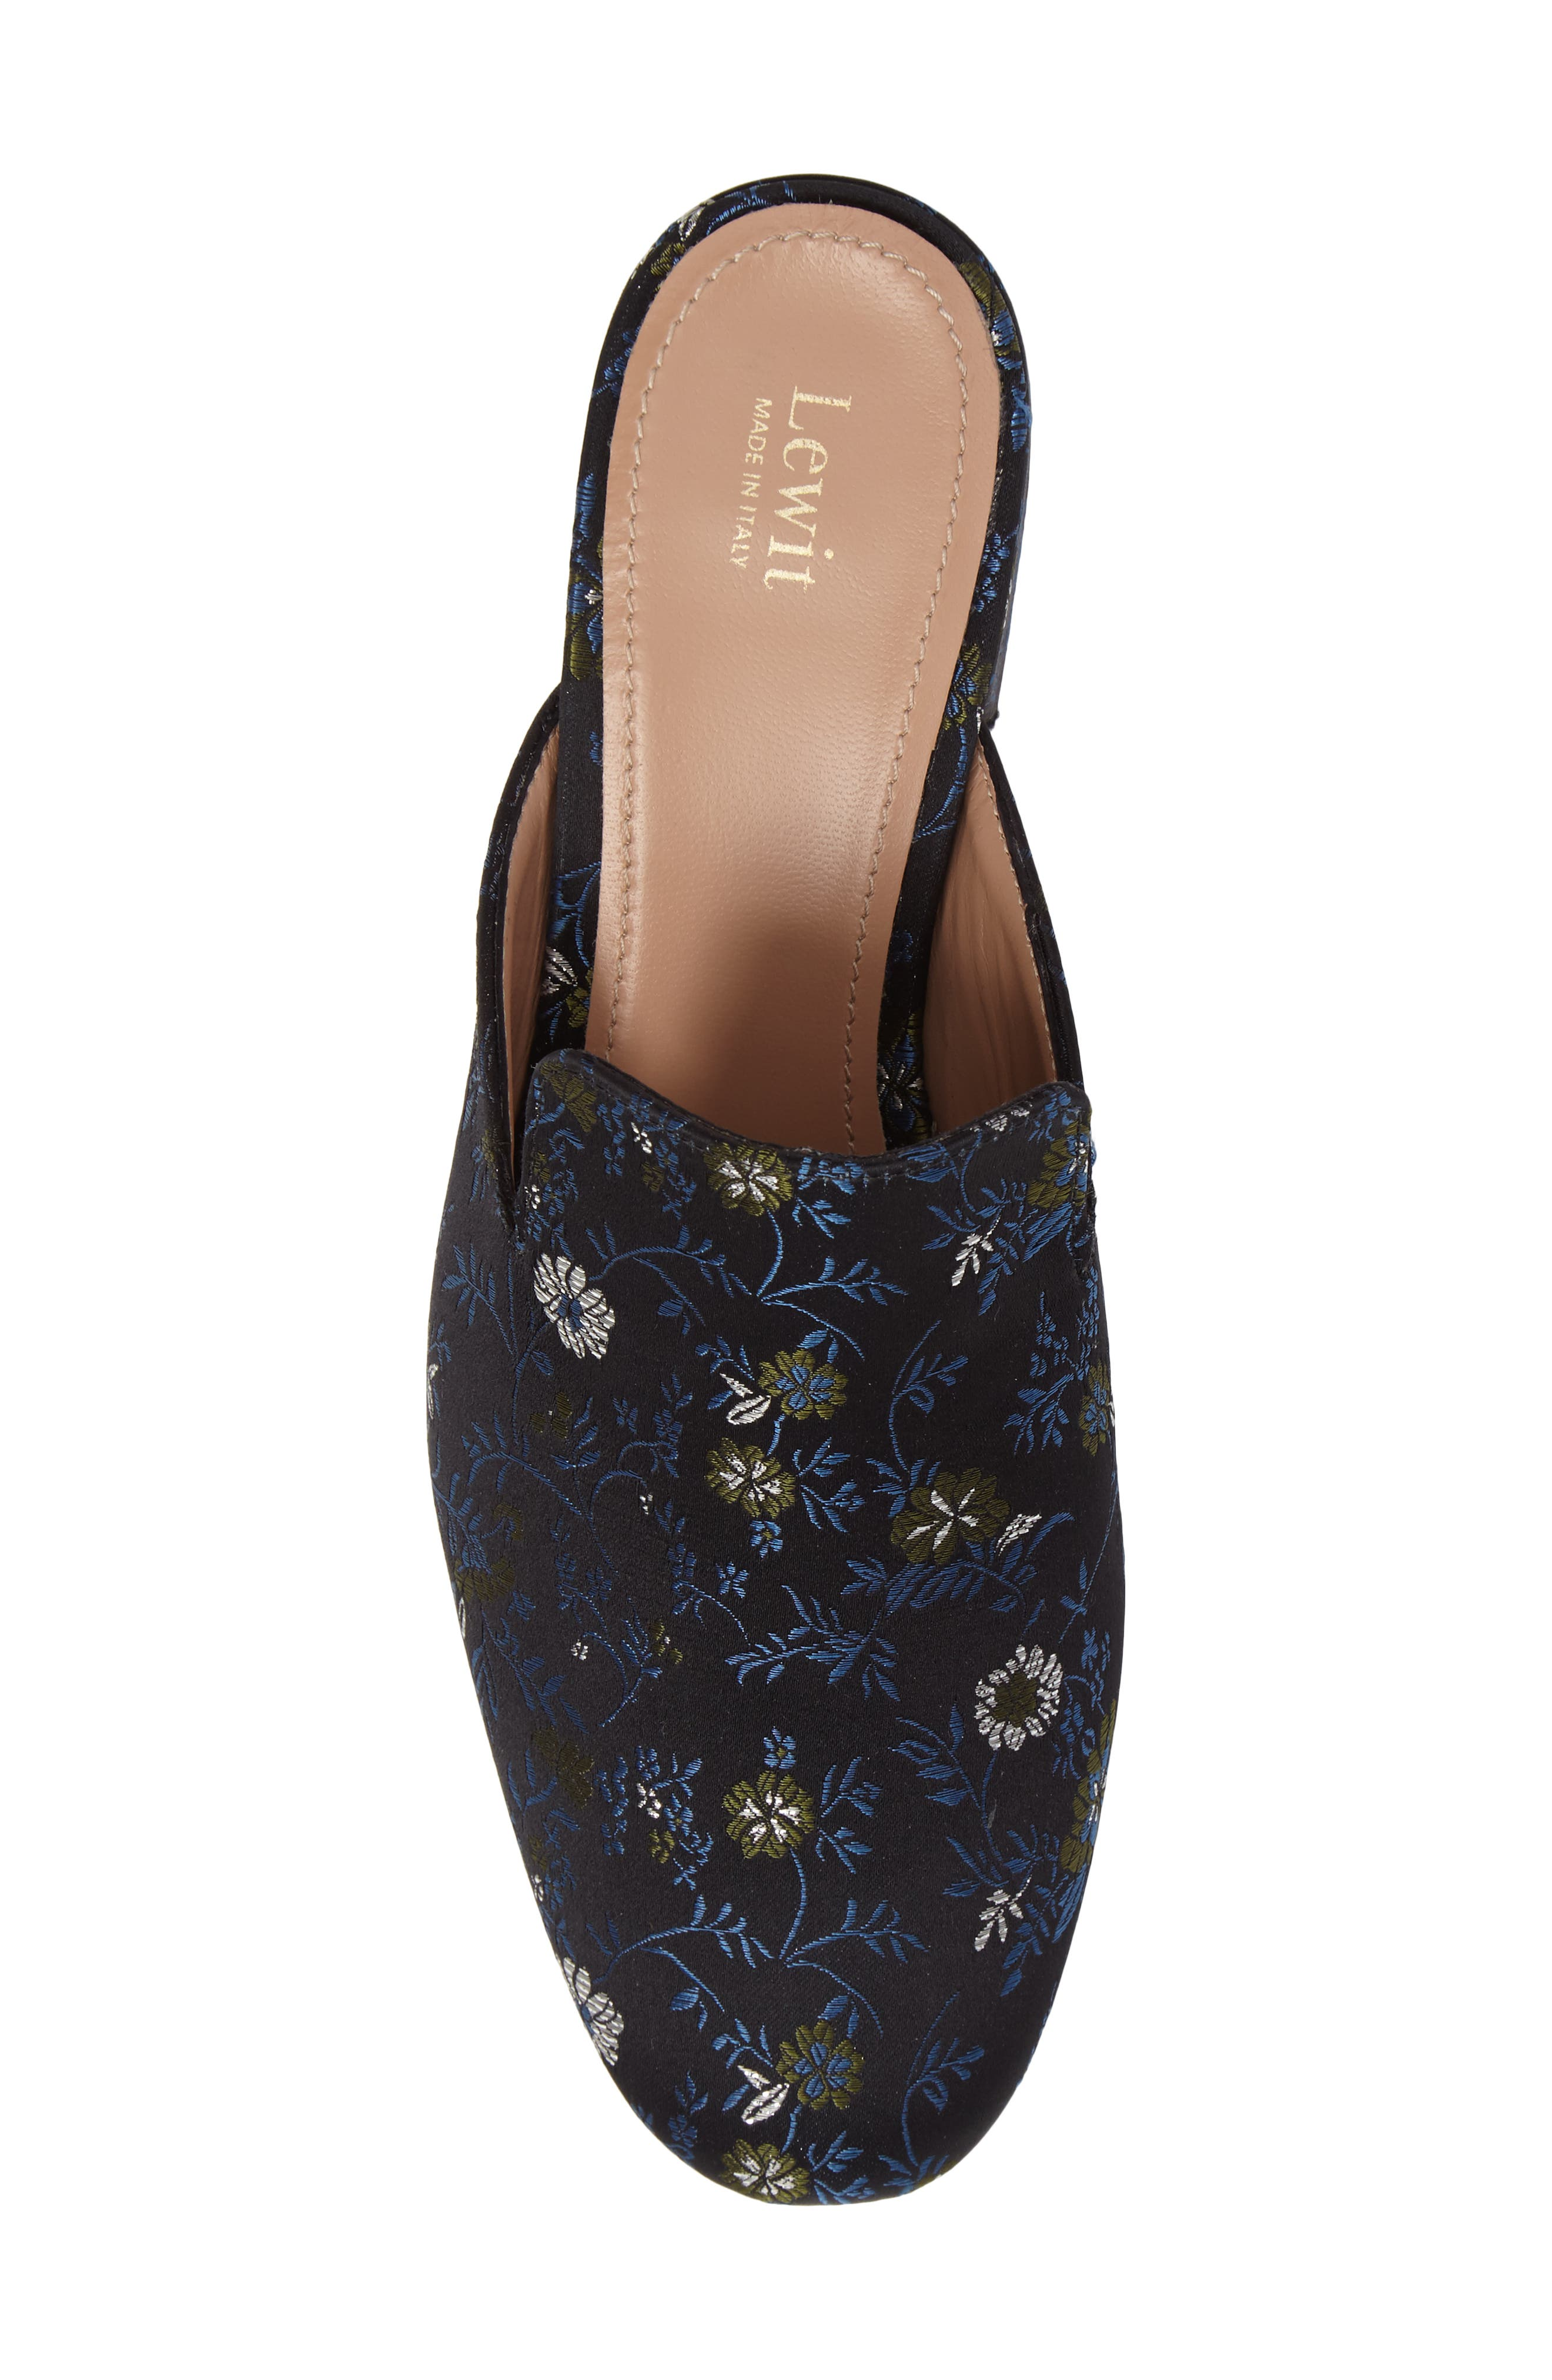 Bianca Embroidered Loafer Mule,                             Alternate thumbnail 5, color,                             005